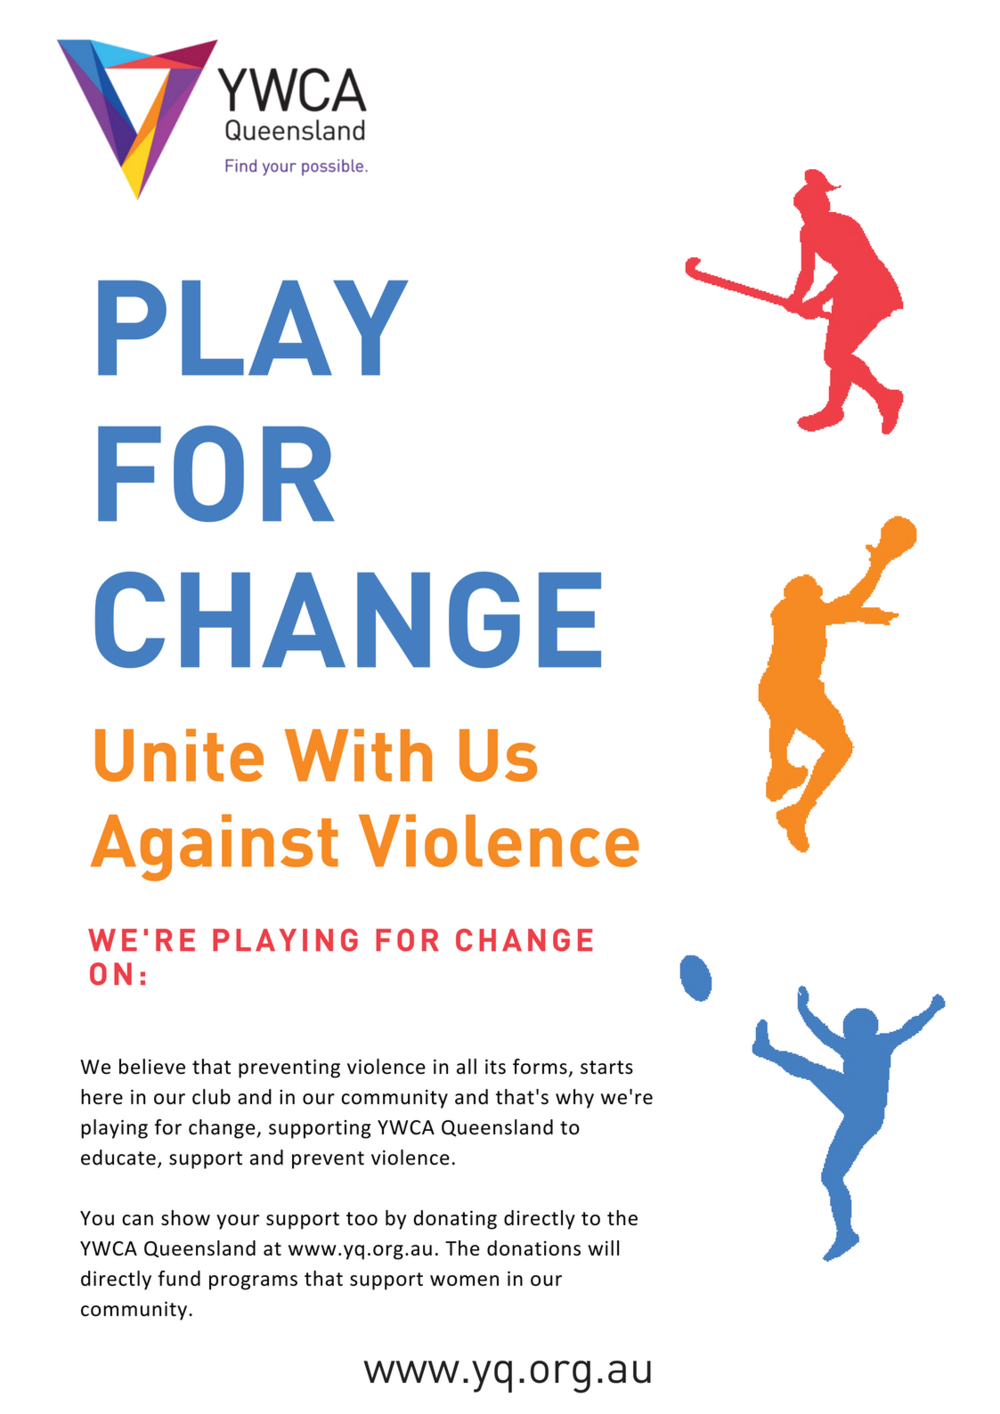 Play for Change - A3 Poster in White